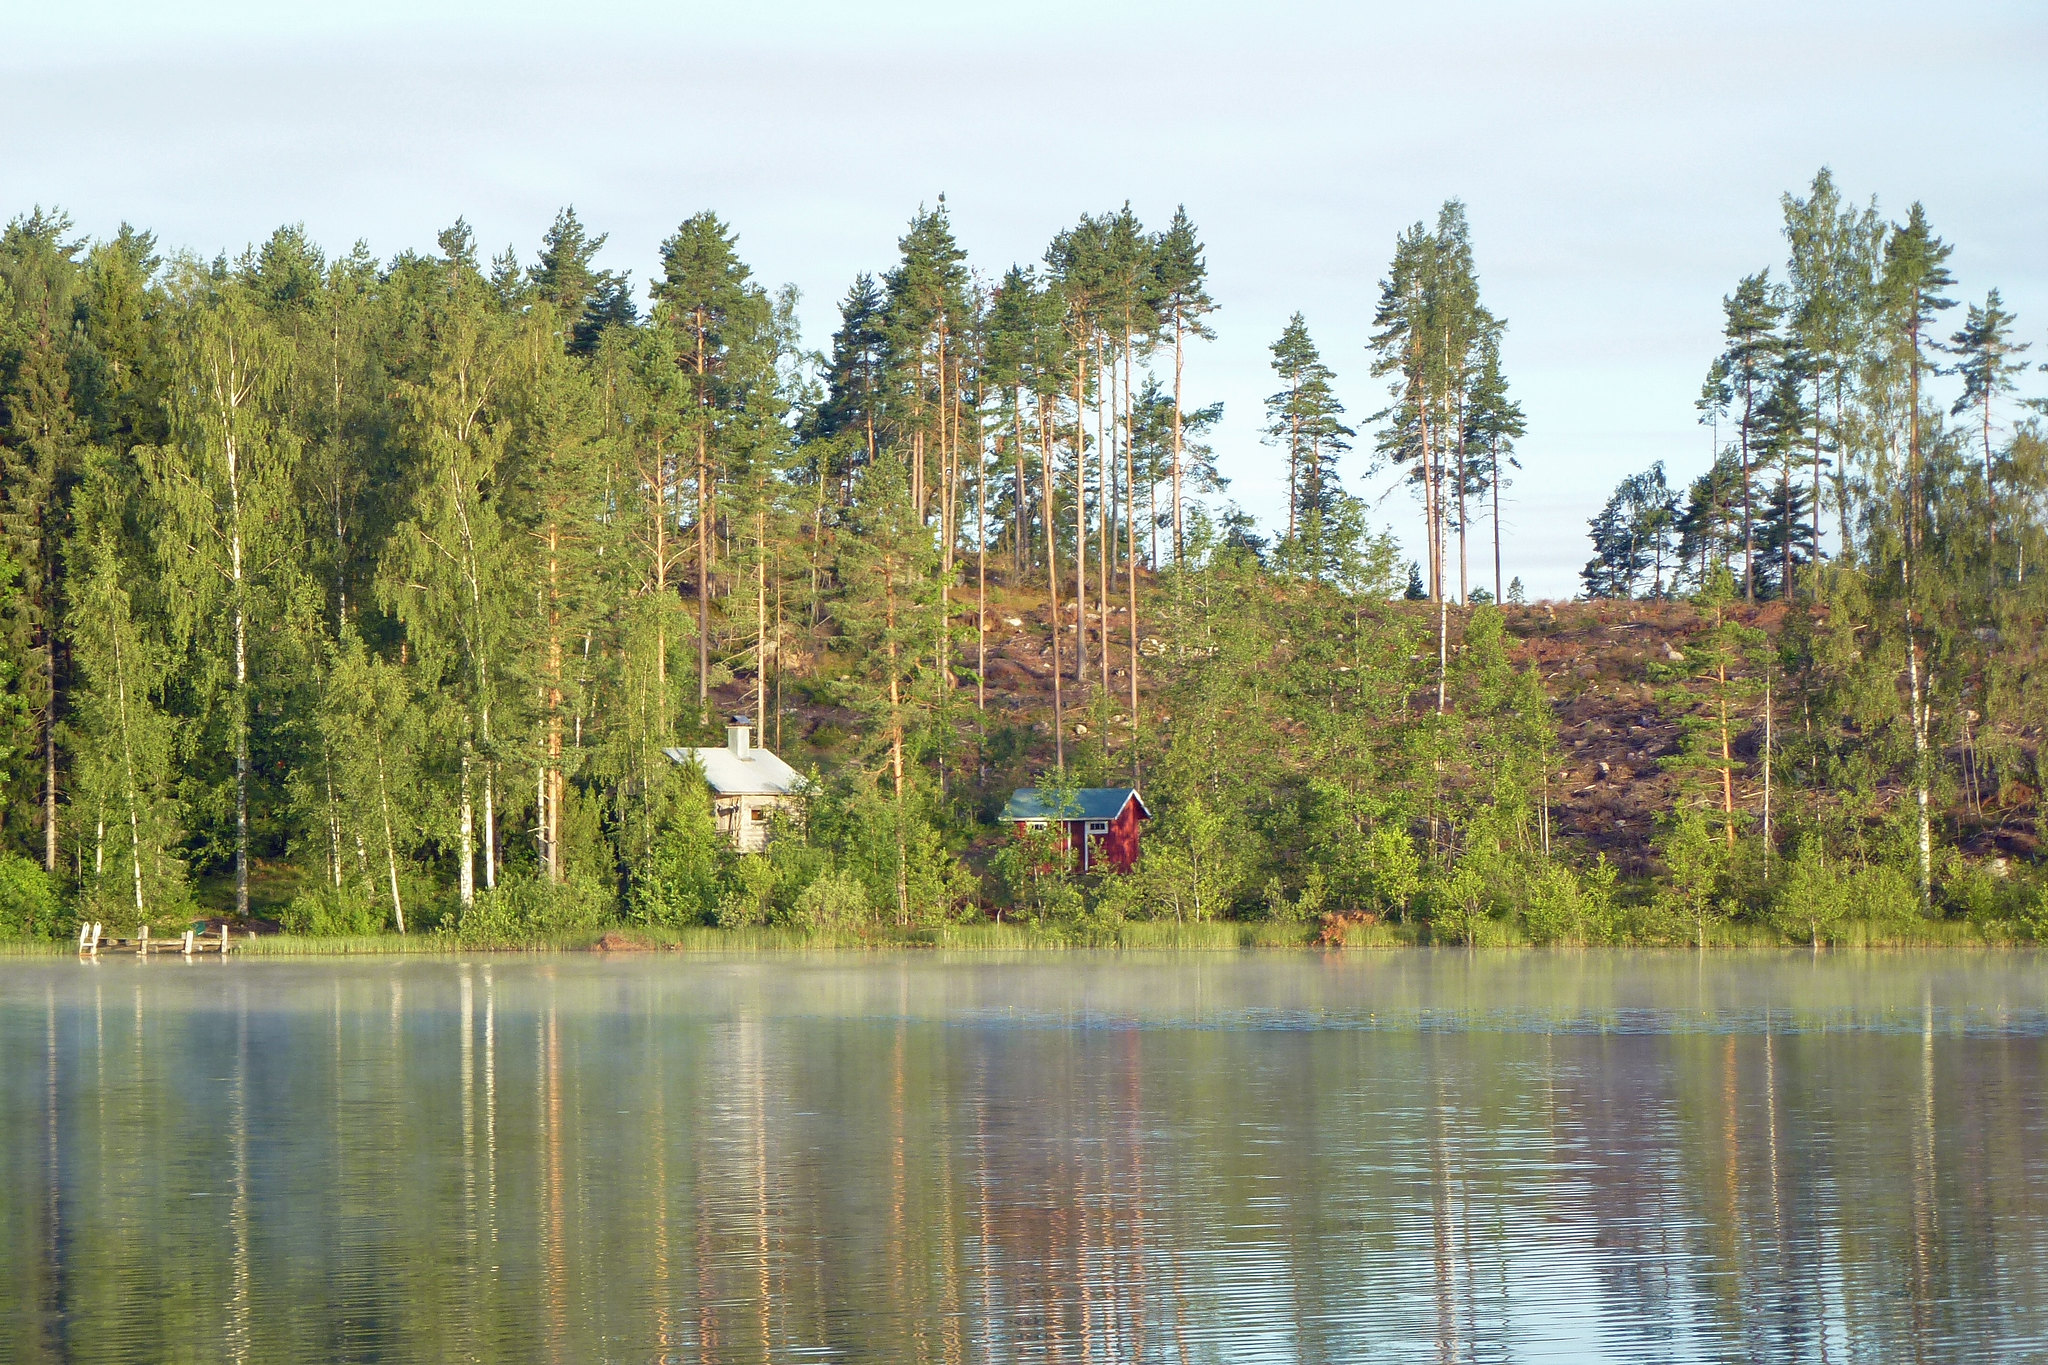 A white and a red wood house on a lake, surrounded by trees.